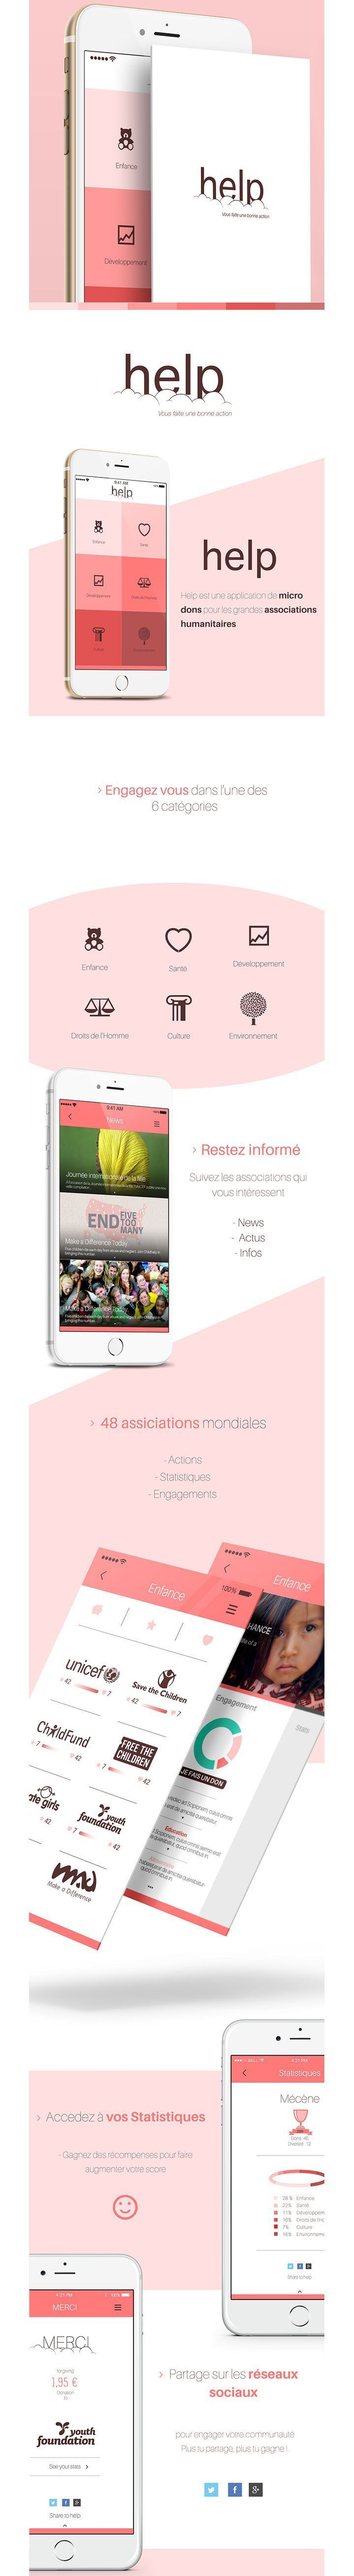 Every day Mobile UI Design and style Inspiration #414